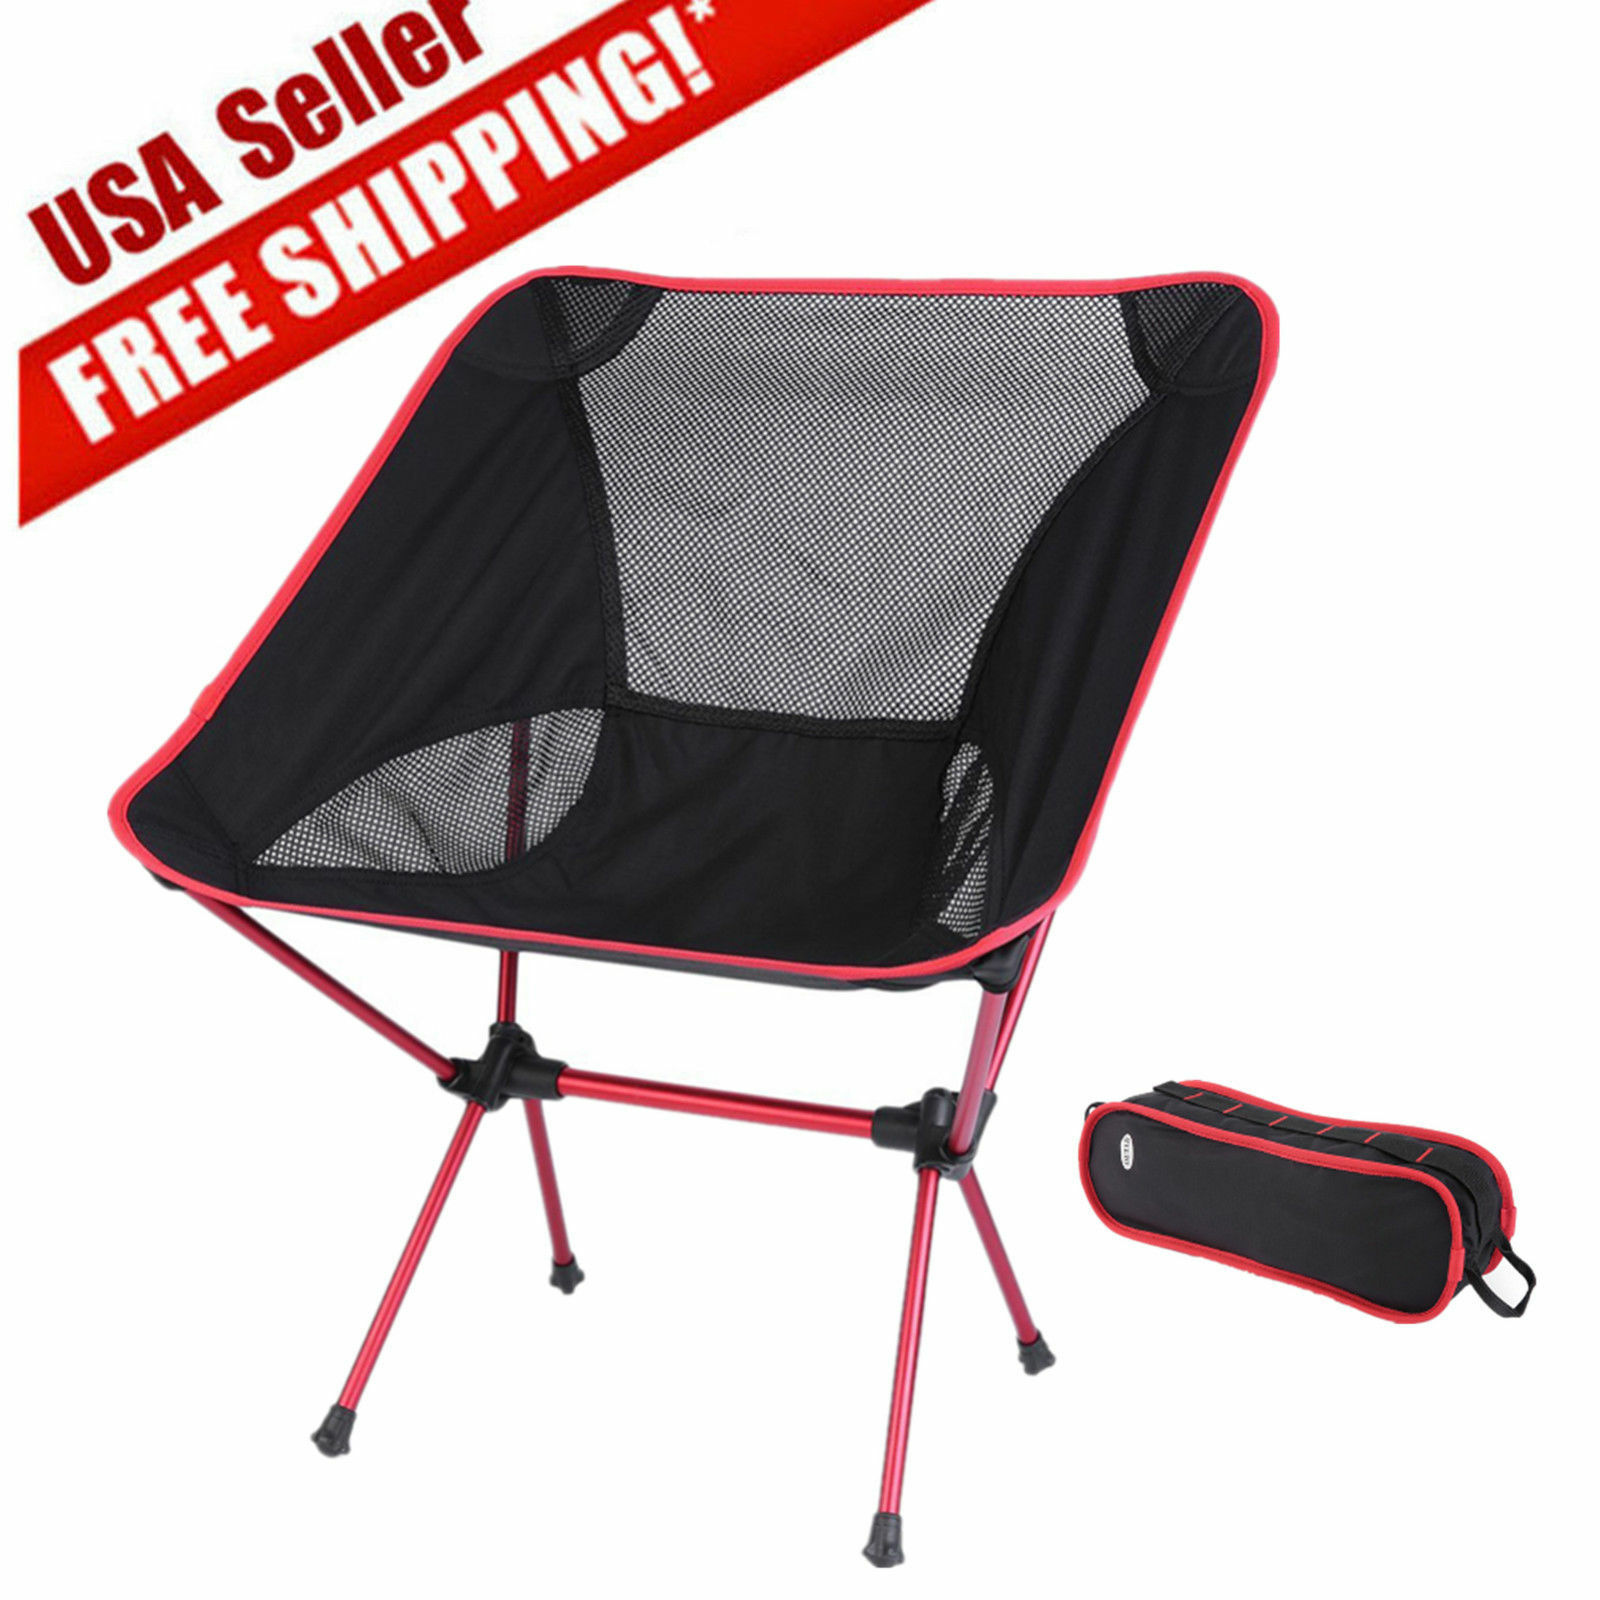 stool chair red david rowland folding seat fishing camping hiking gardening beach